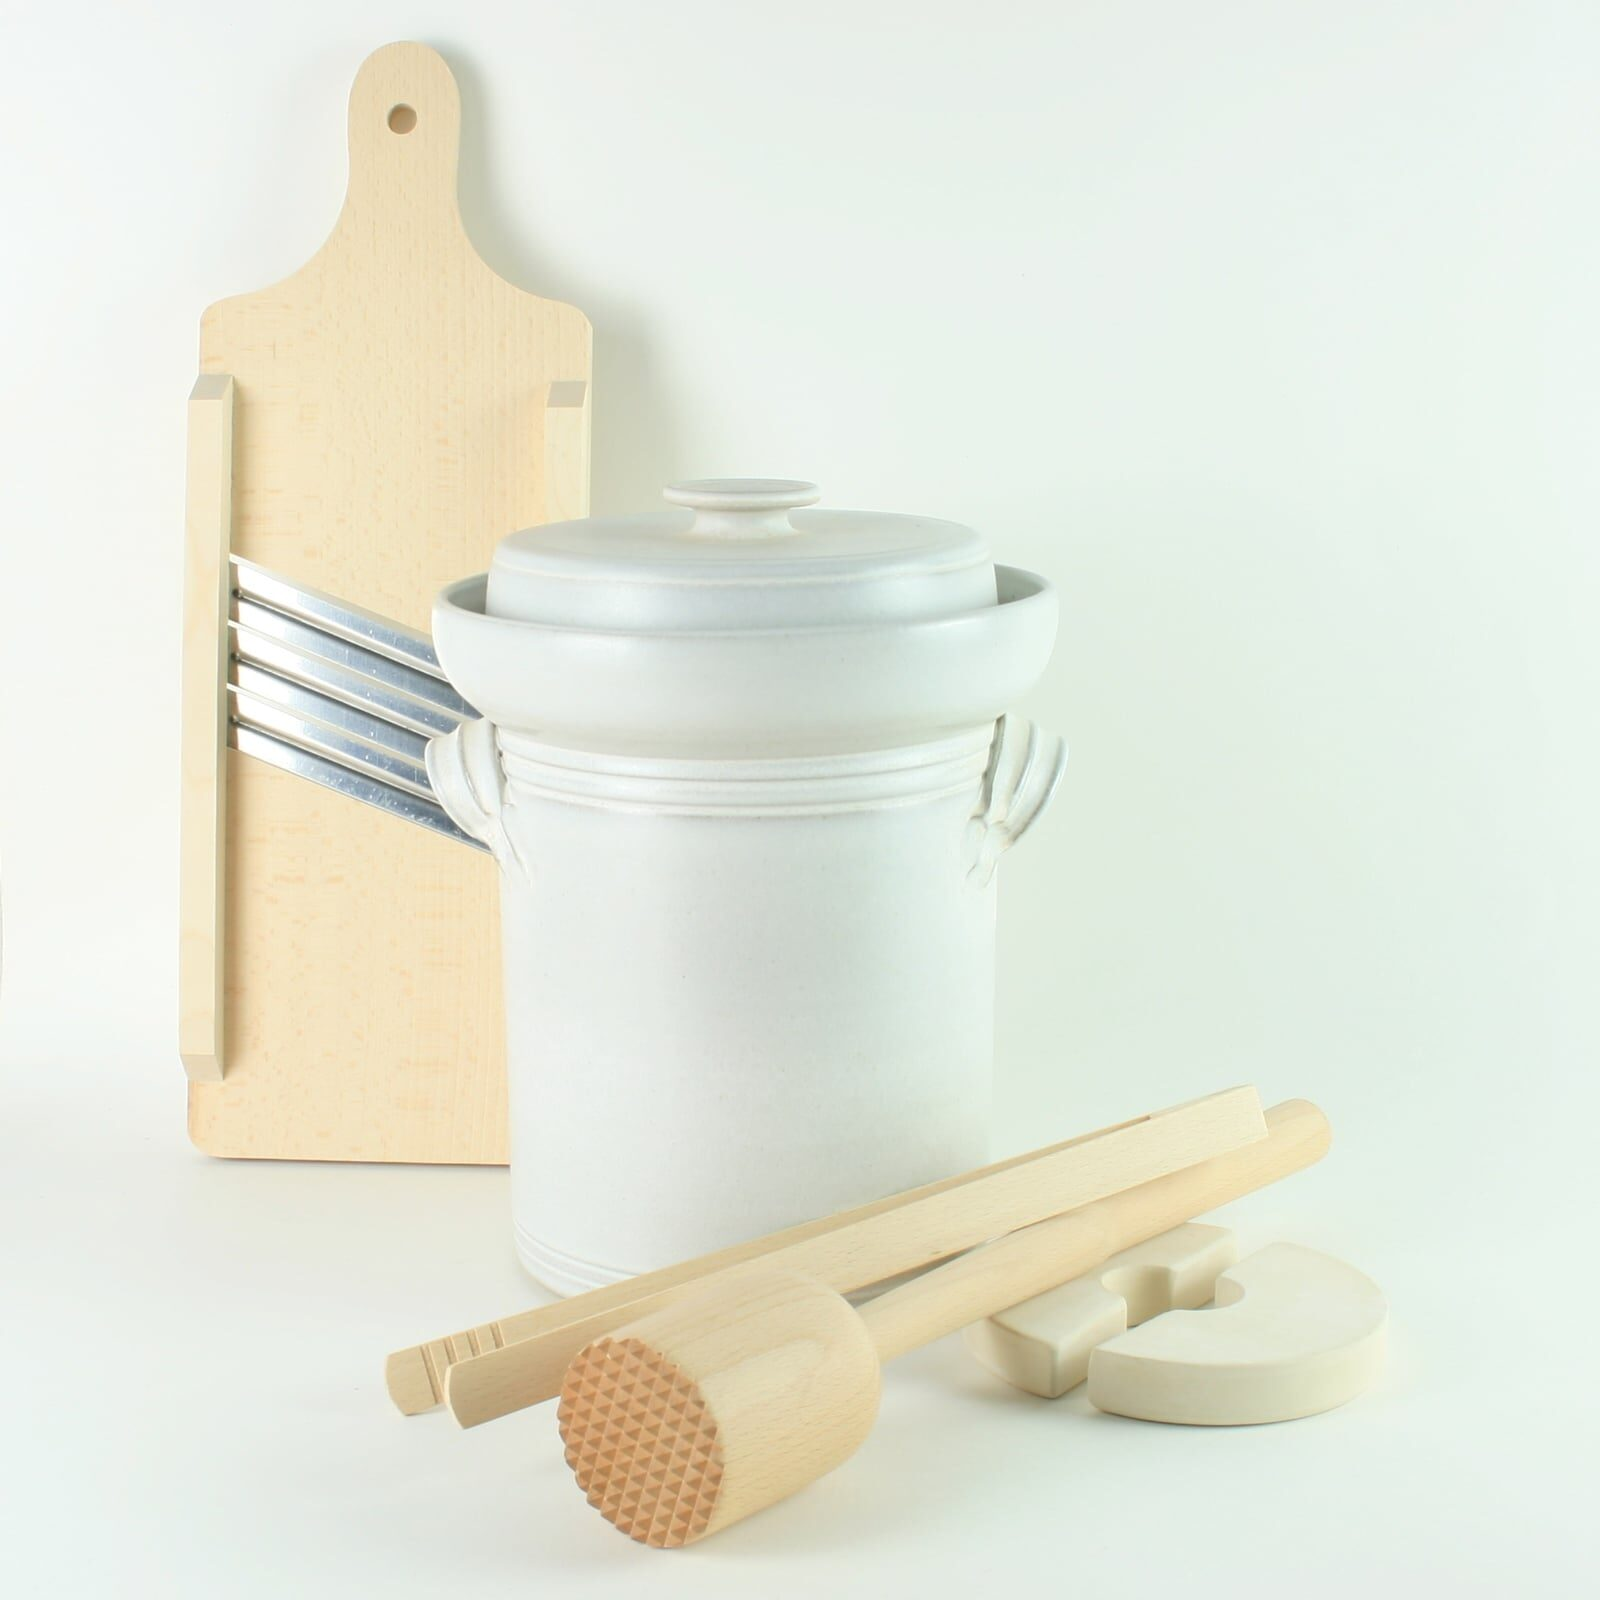 handmade 4 litre ceramic fermentation crock set for making sauerkraut, kimchi and pickles with wooden tools